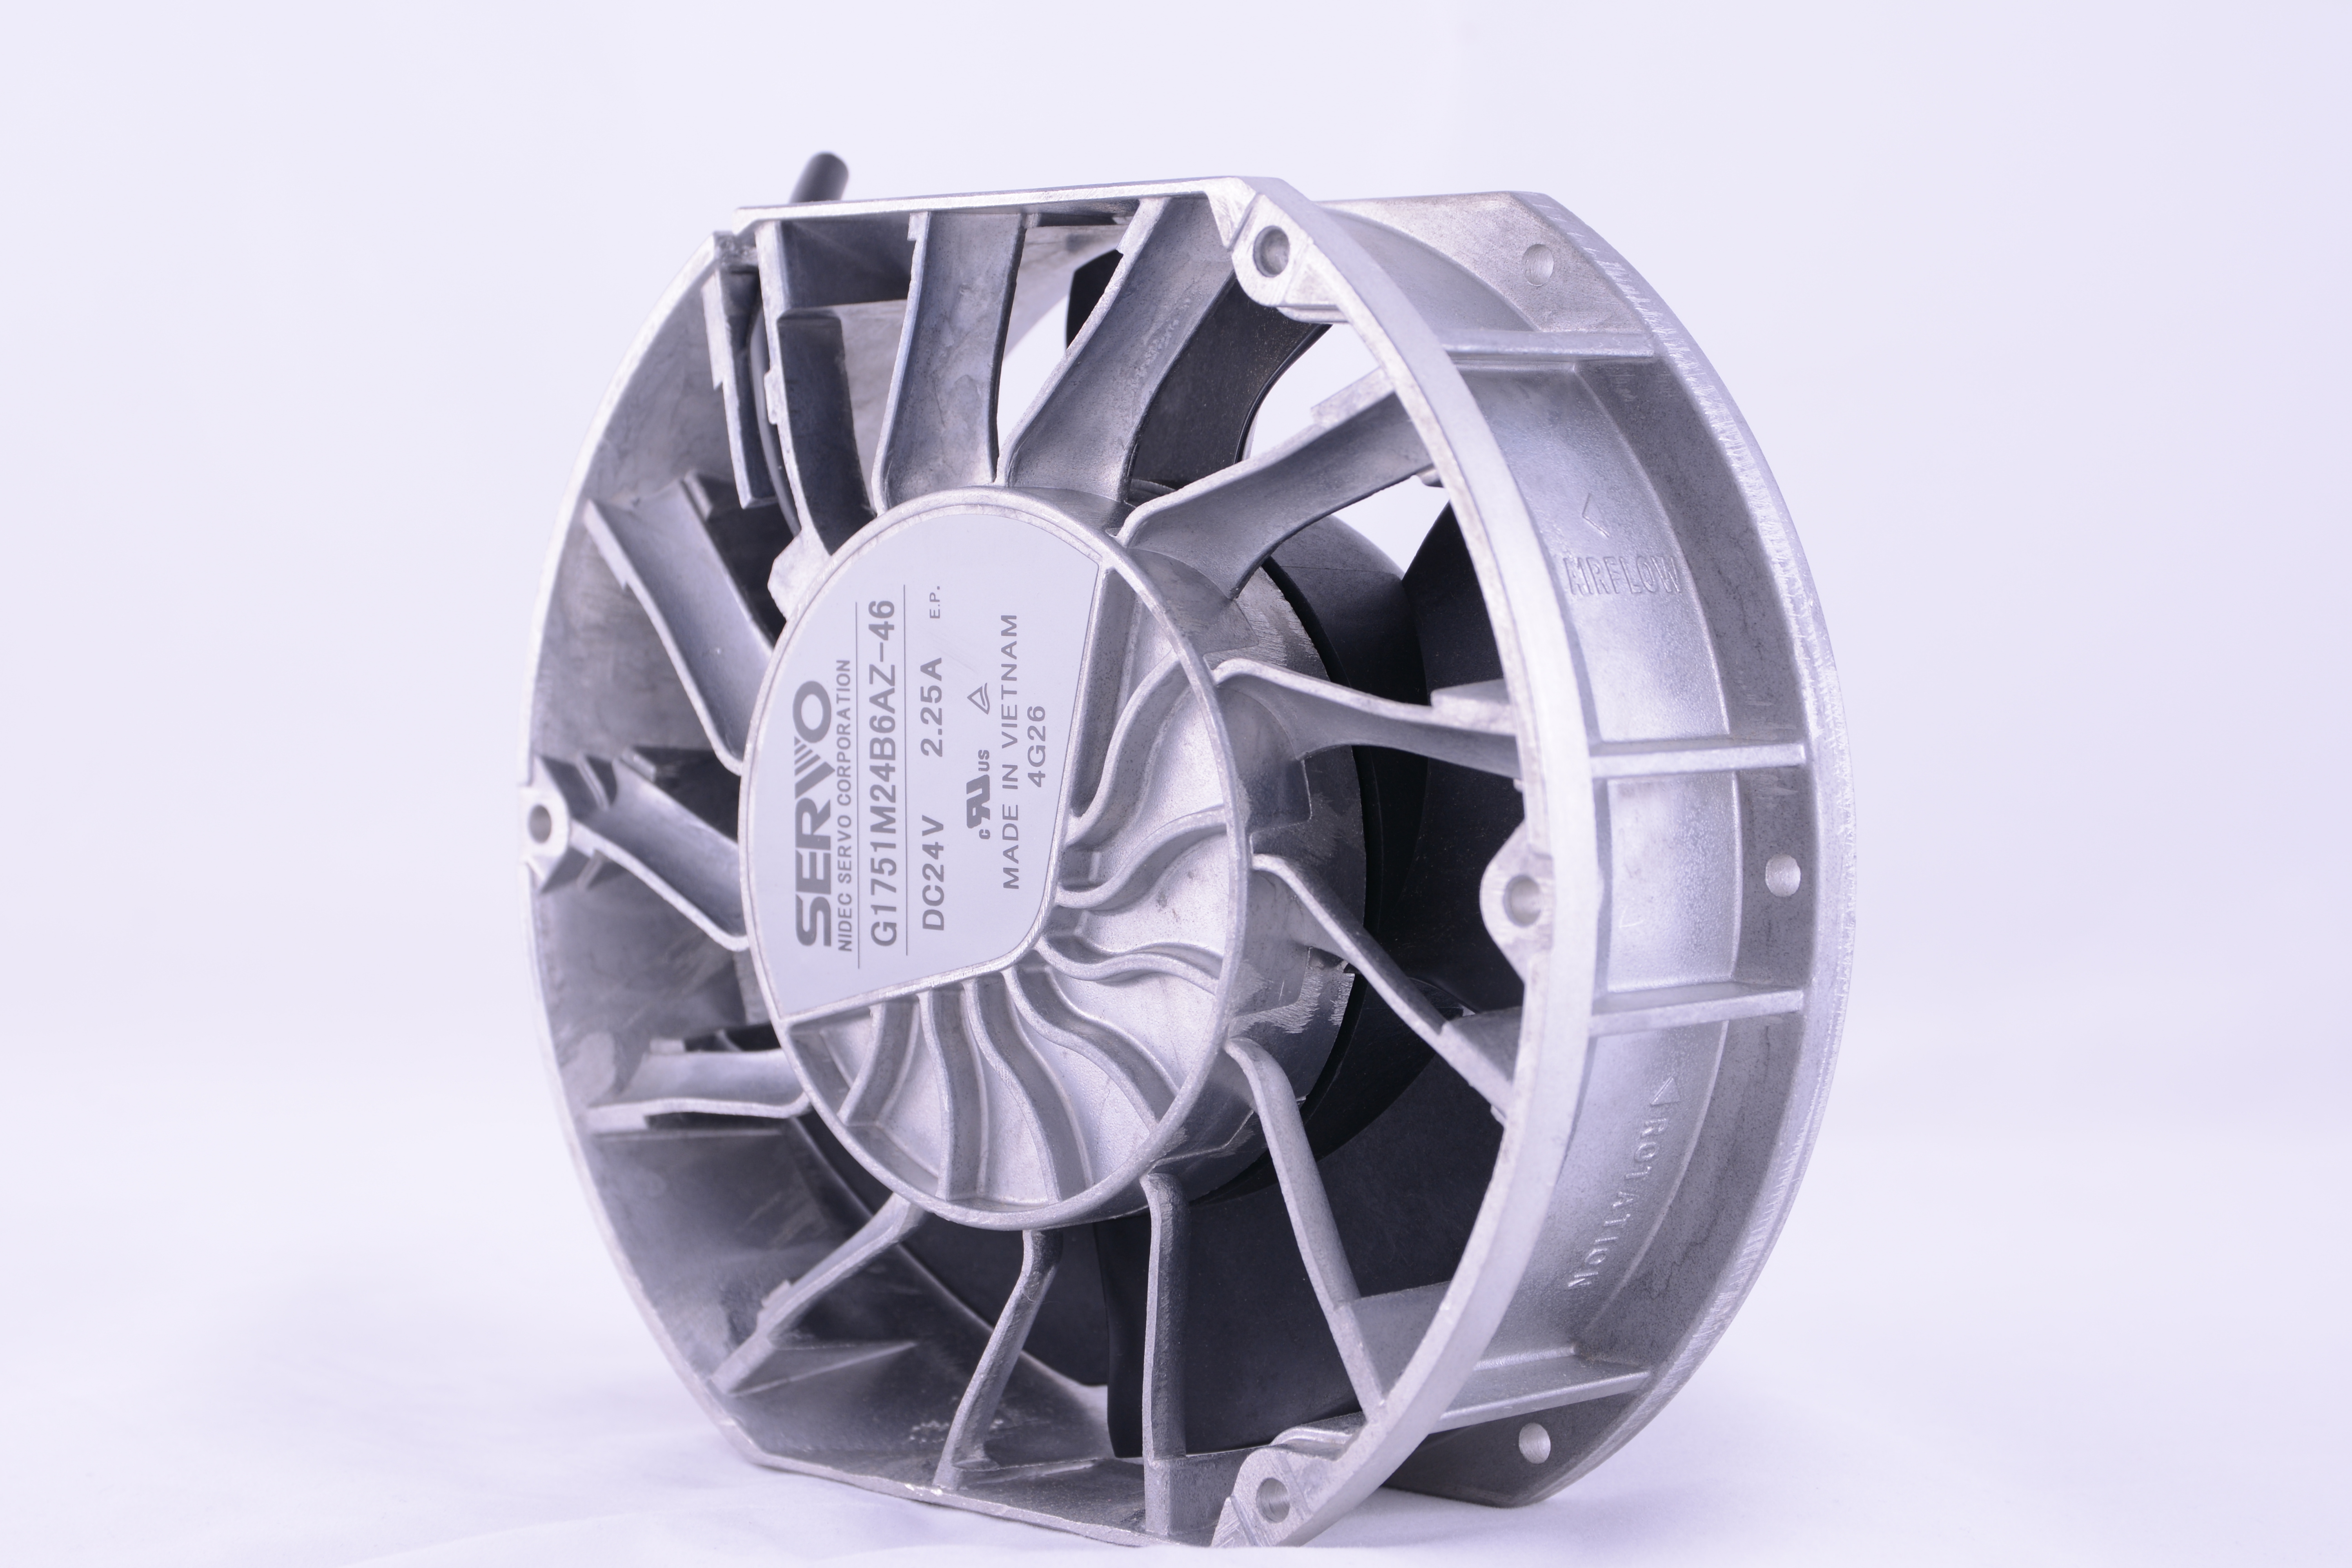 Frameless Fans Offer Longevity Silence With Fluid Bearings Fan Starts To Rotate At 40 C On The Heatsink Design Re Invents Static Pressure